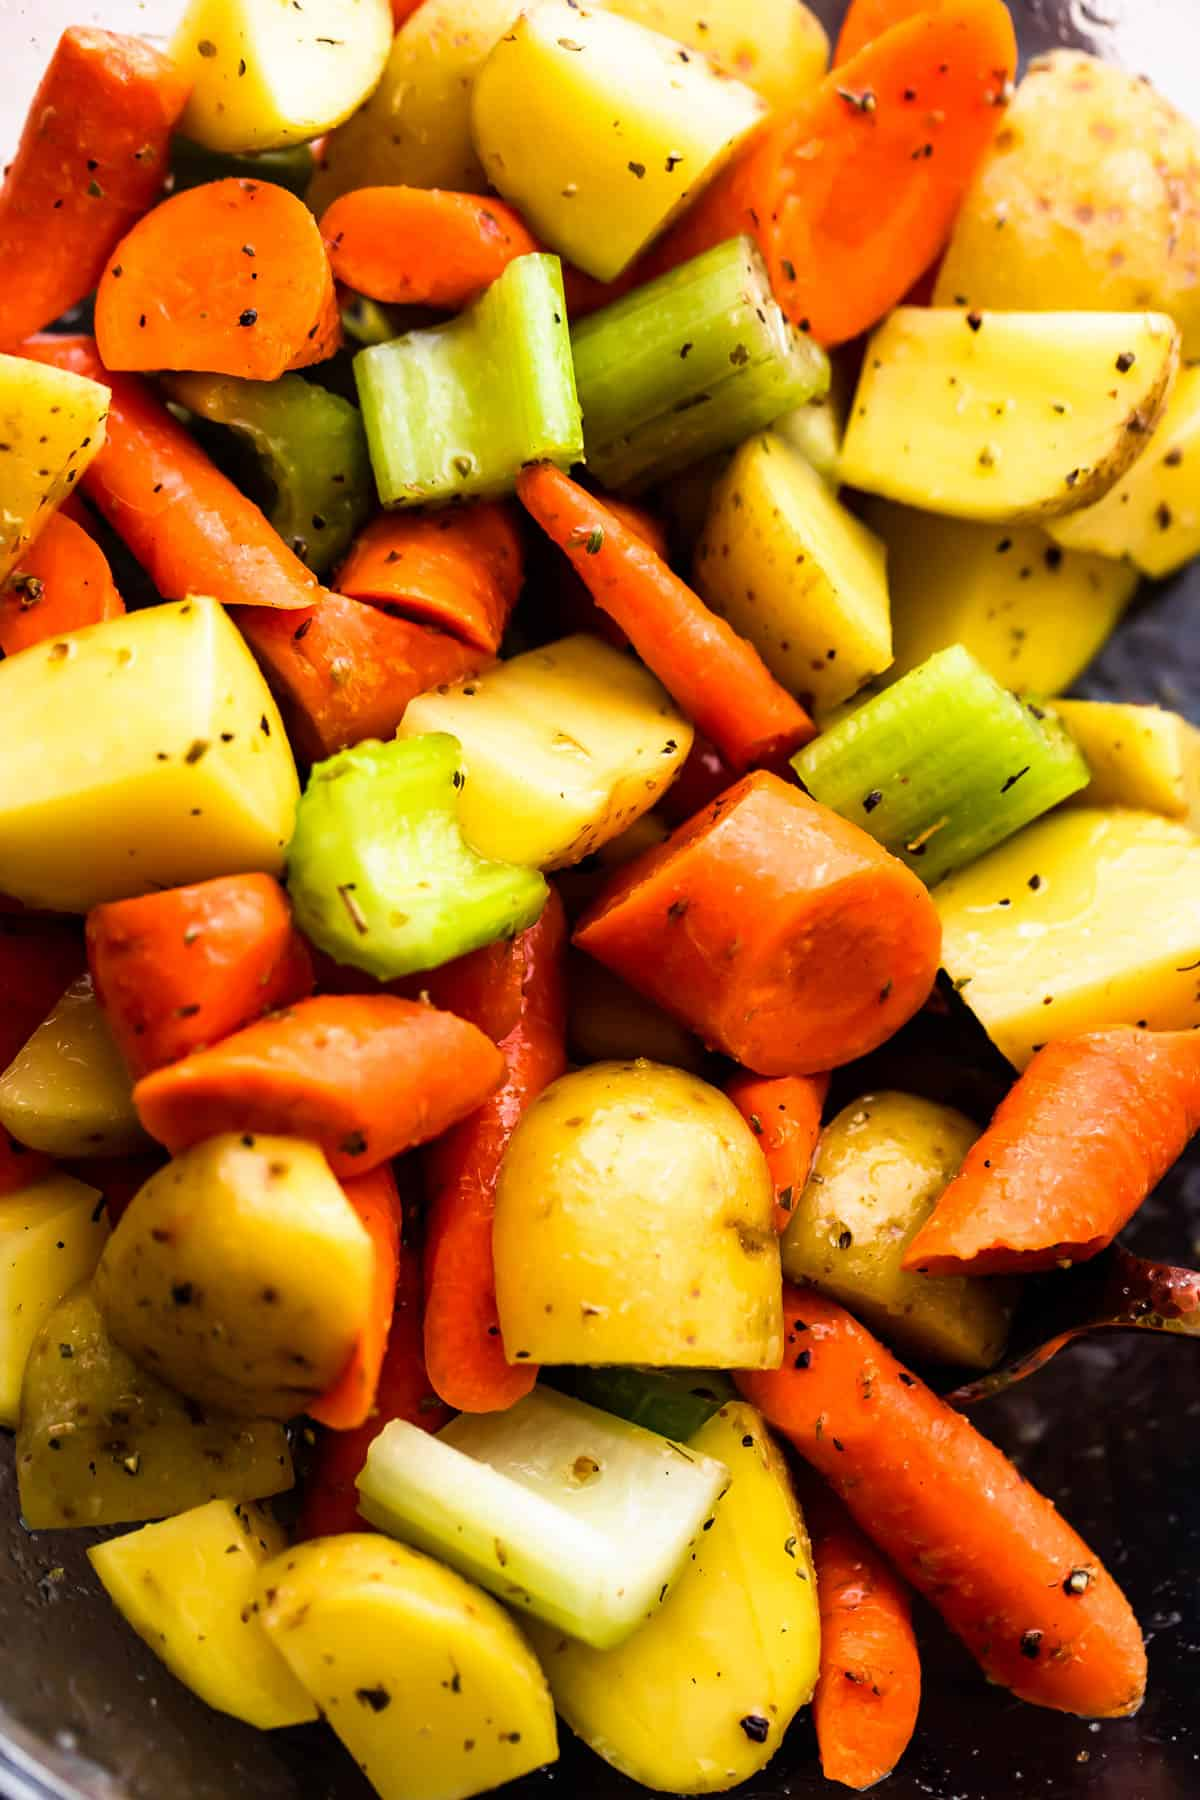 glass bowl with chopped pieces of carrots, celery, and potatoes